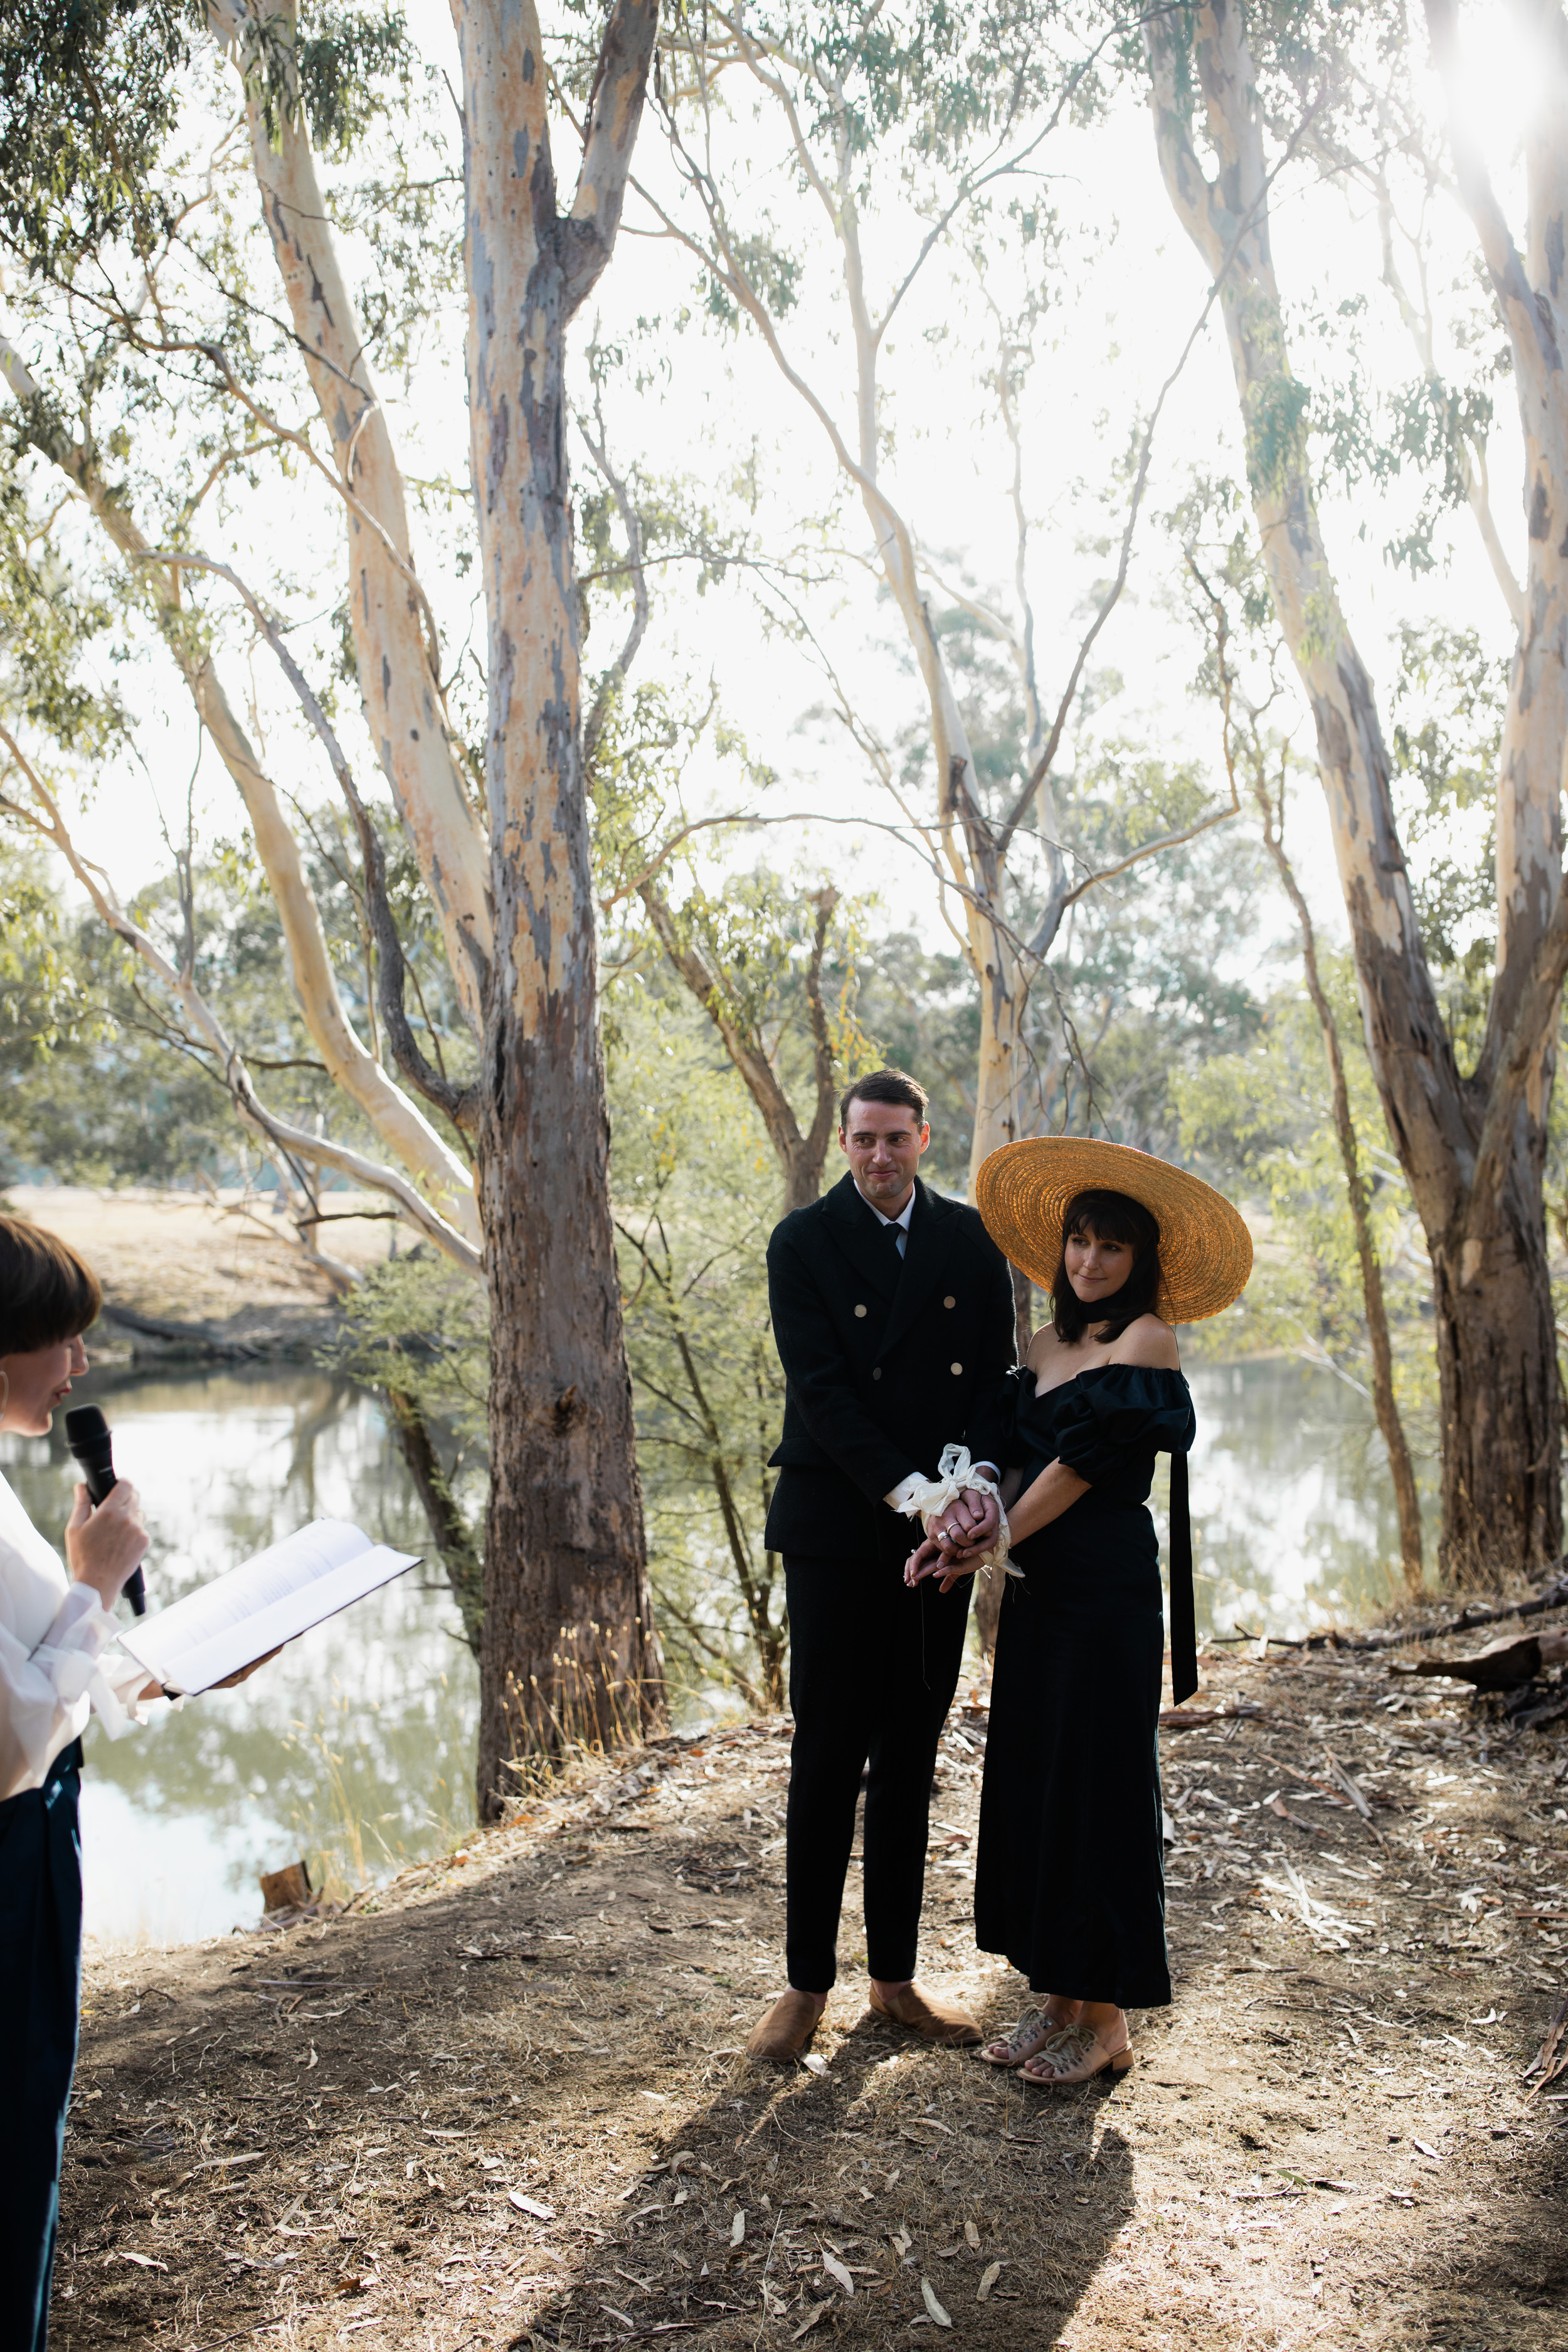 I-Got-You-Babe-Weddings-Claire-Dave-Trawol-VIC-Country-Property-Wedding130.JPG